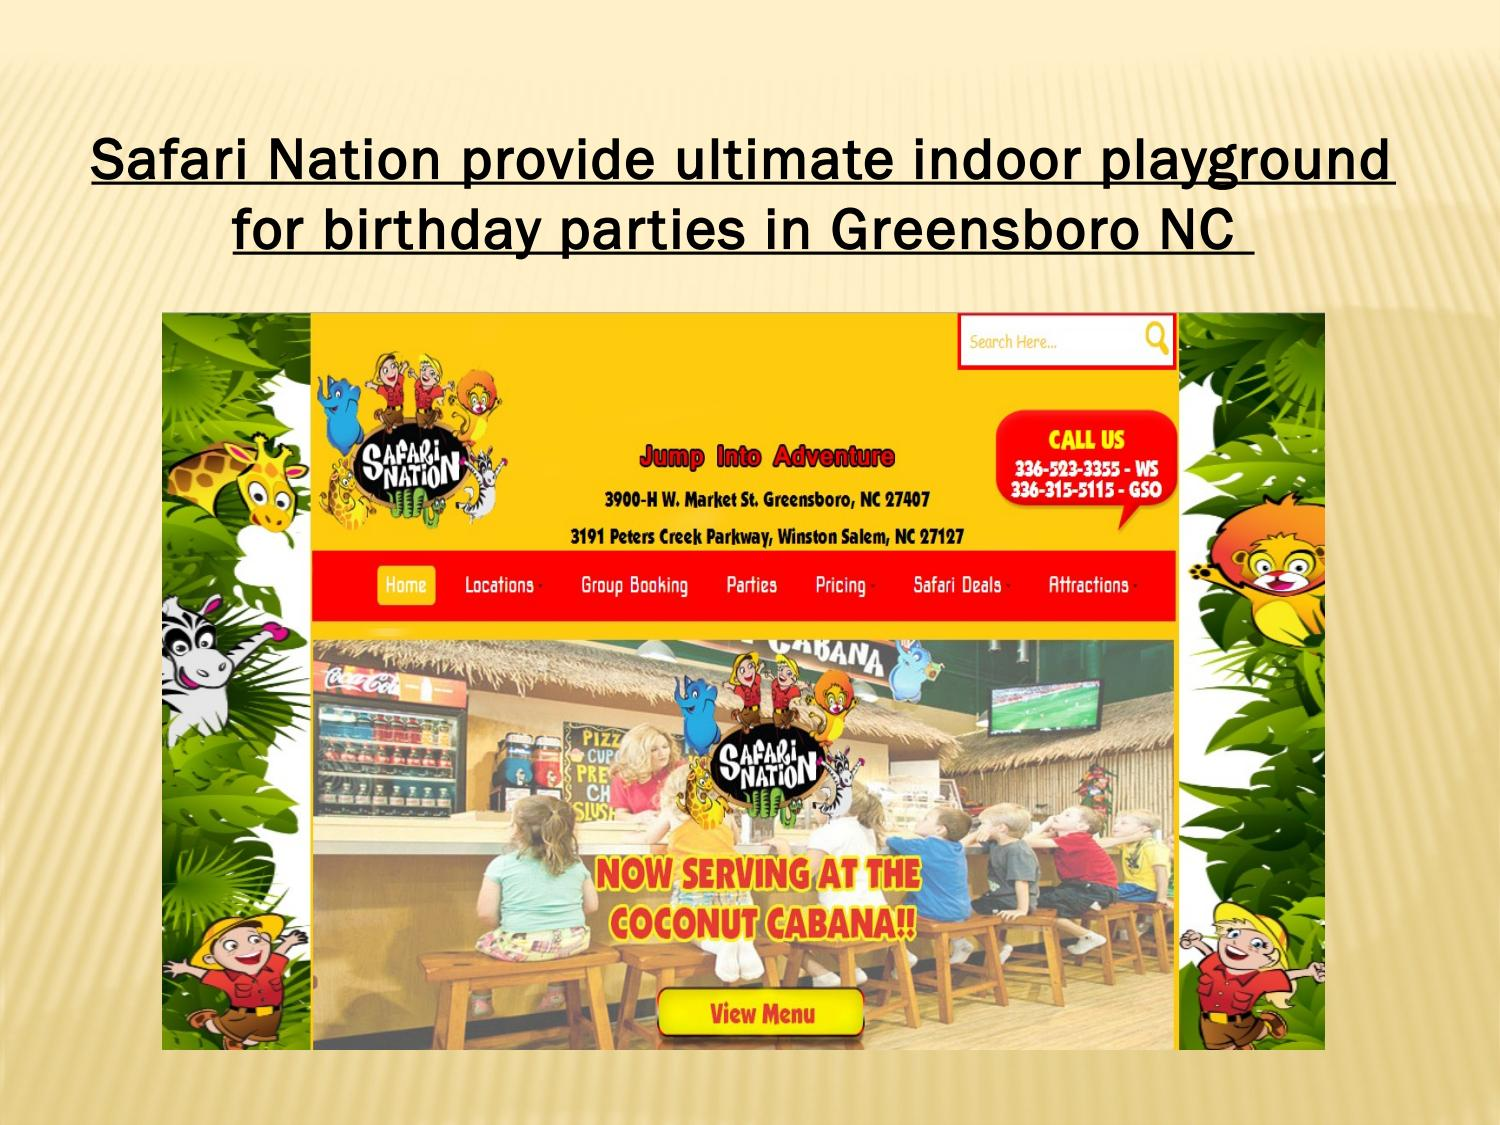 Safari Nation Provide Ultimate Indoor Playground For Birthday Parties In Greensboro Nc By Helen Tan